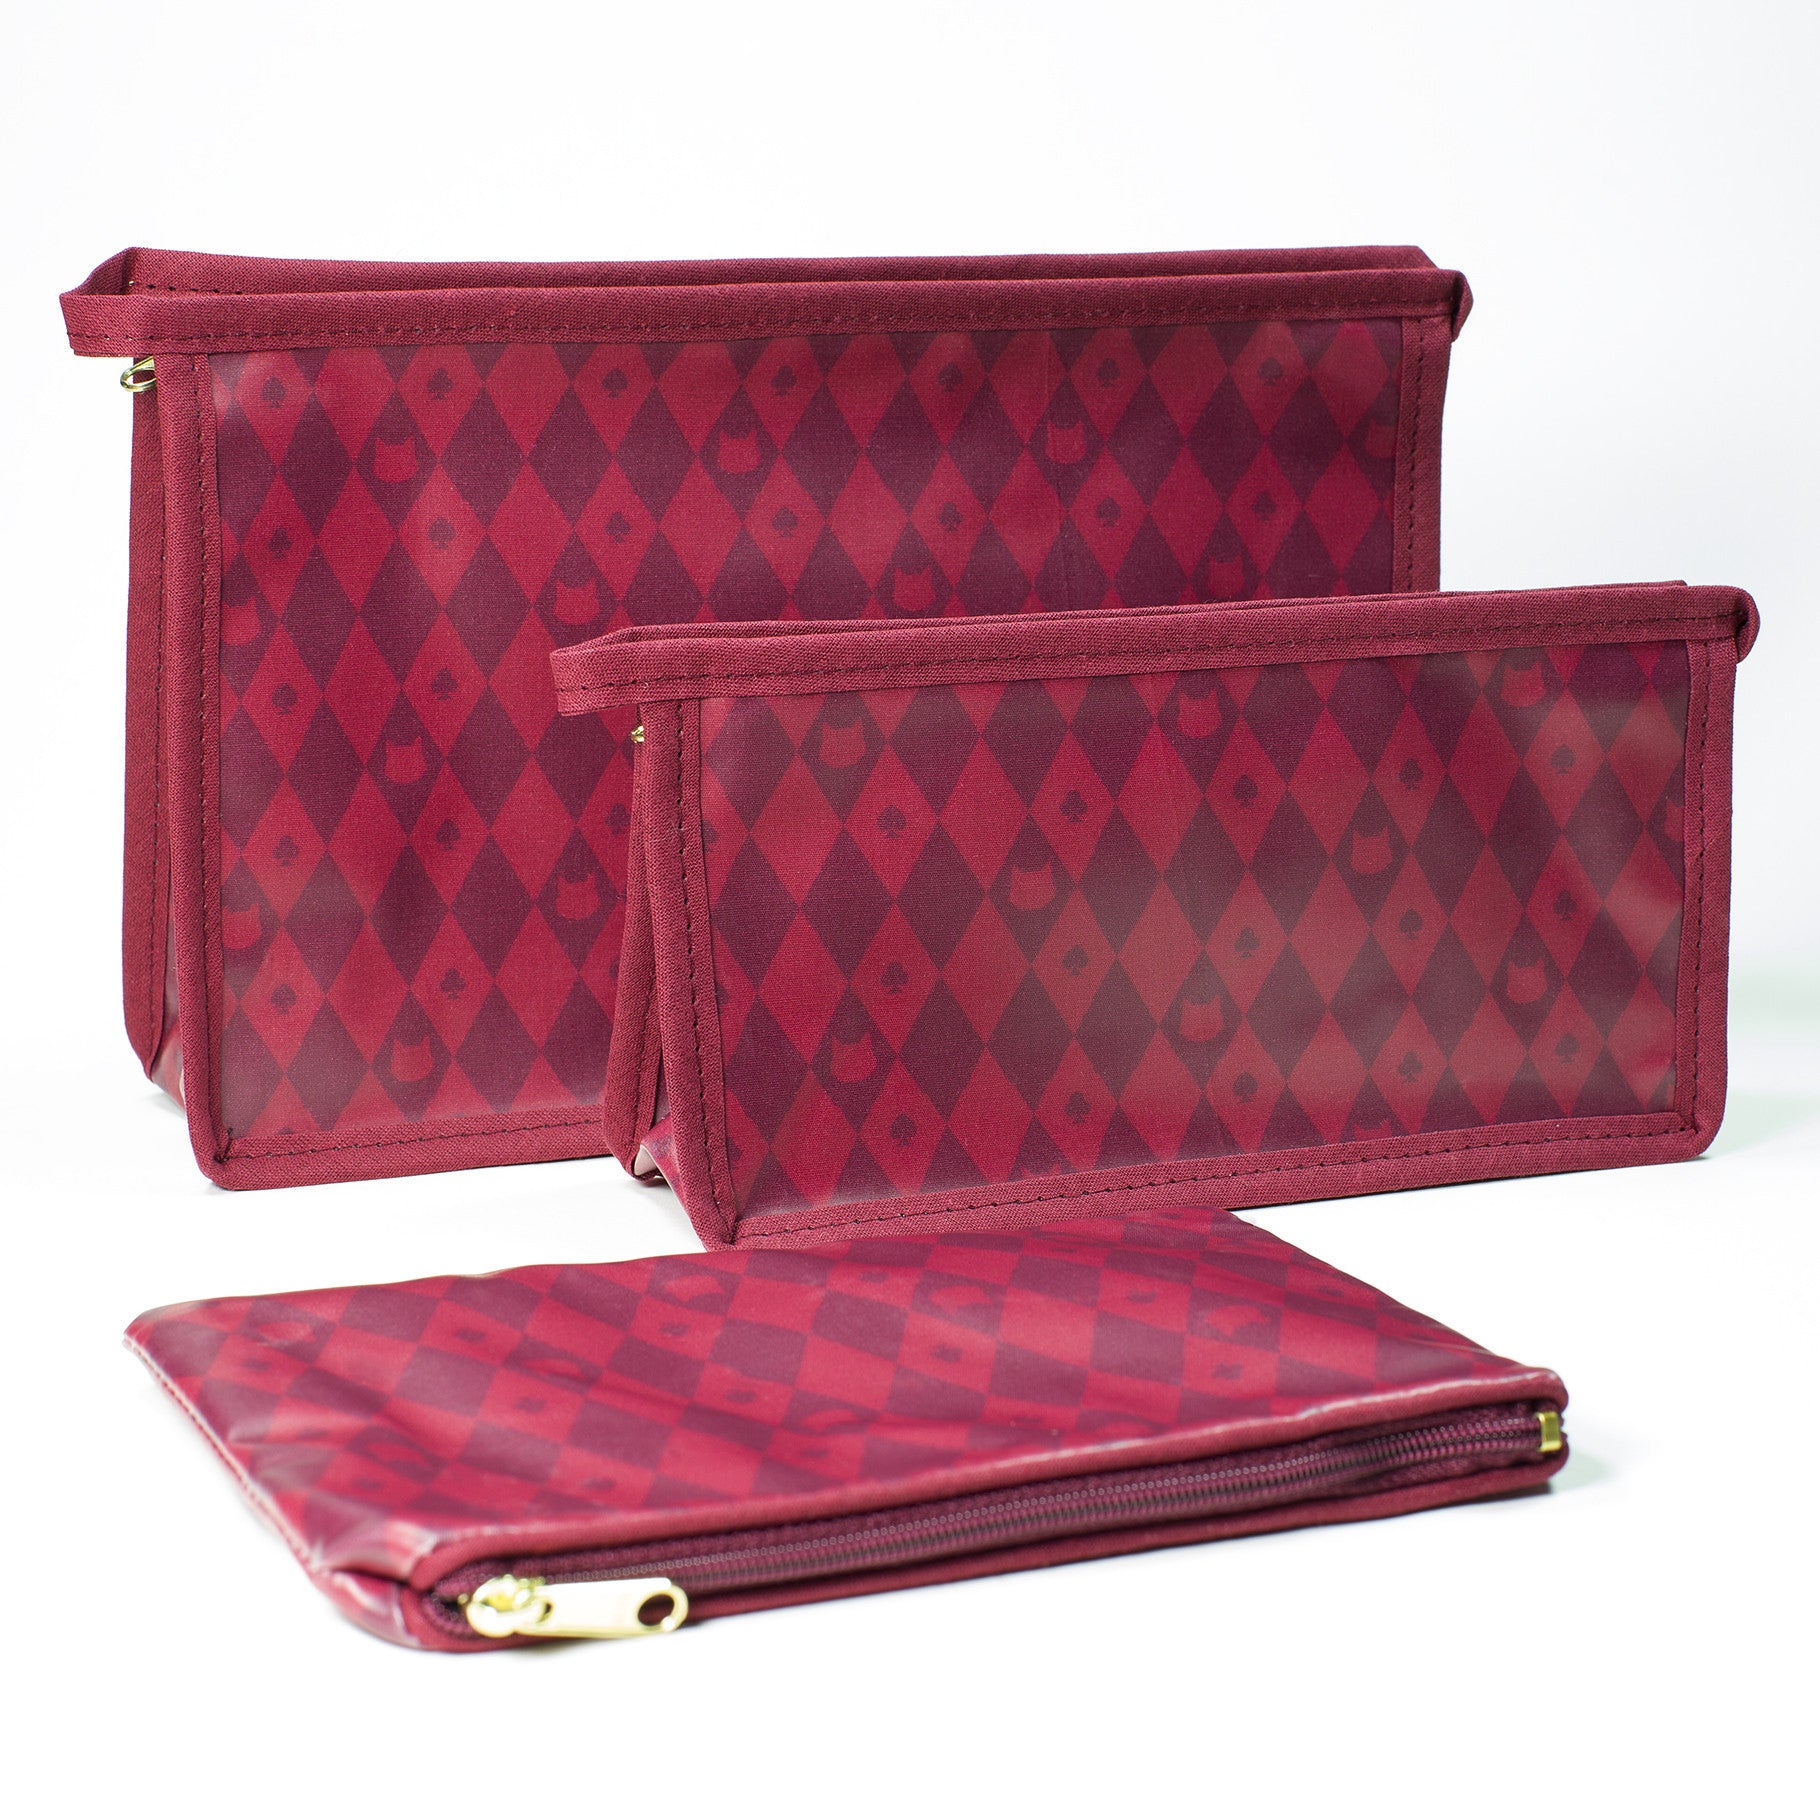 Lady Dinahs Exclusive Cosmetic Bags - burgundy